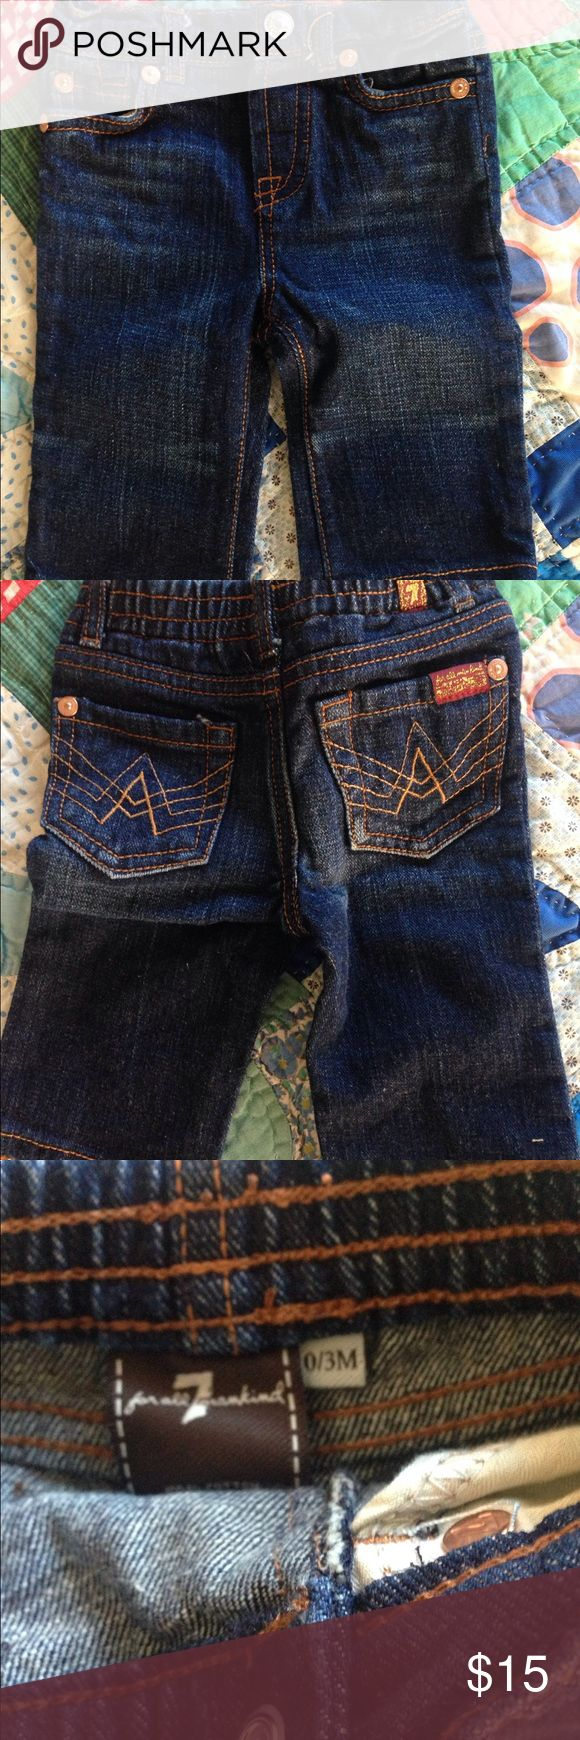 Seven for all man kind jeans 0-3 months Excellent condition, never worn. Seven jeans, size 0-3 months. Seven7 Bottoms Jeans